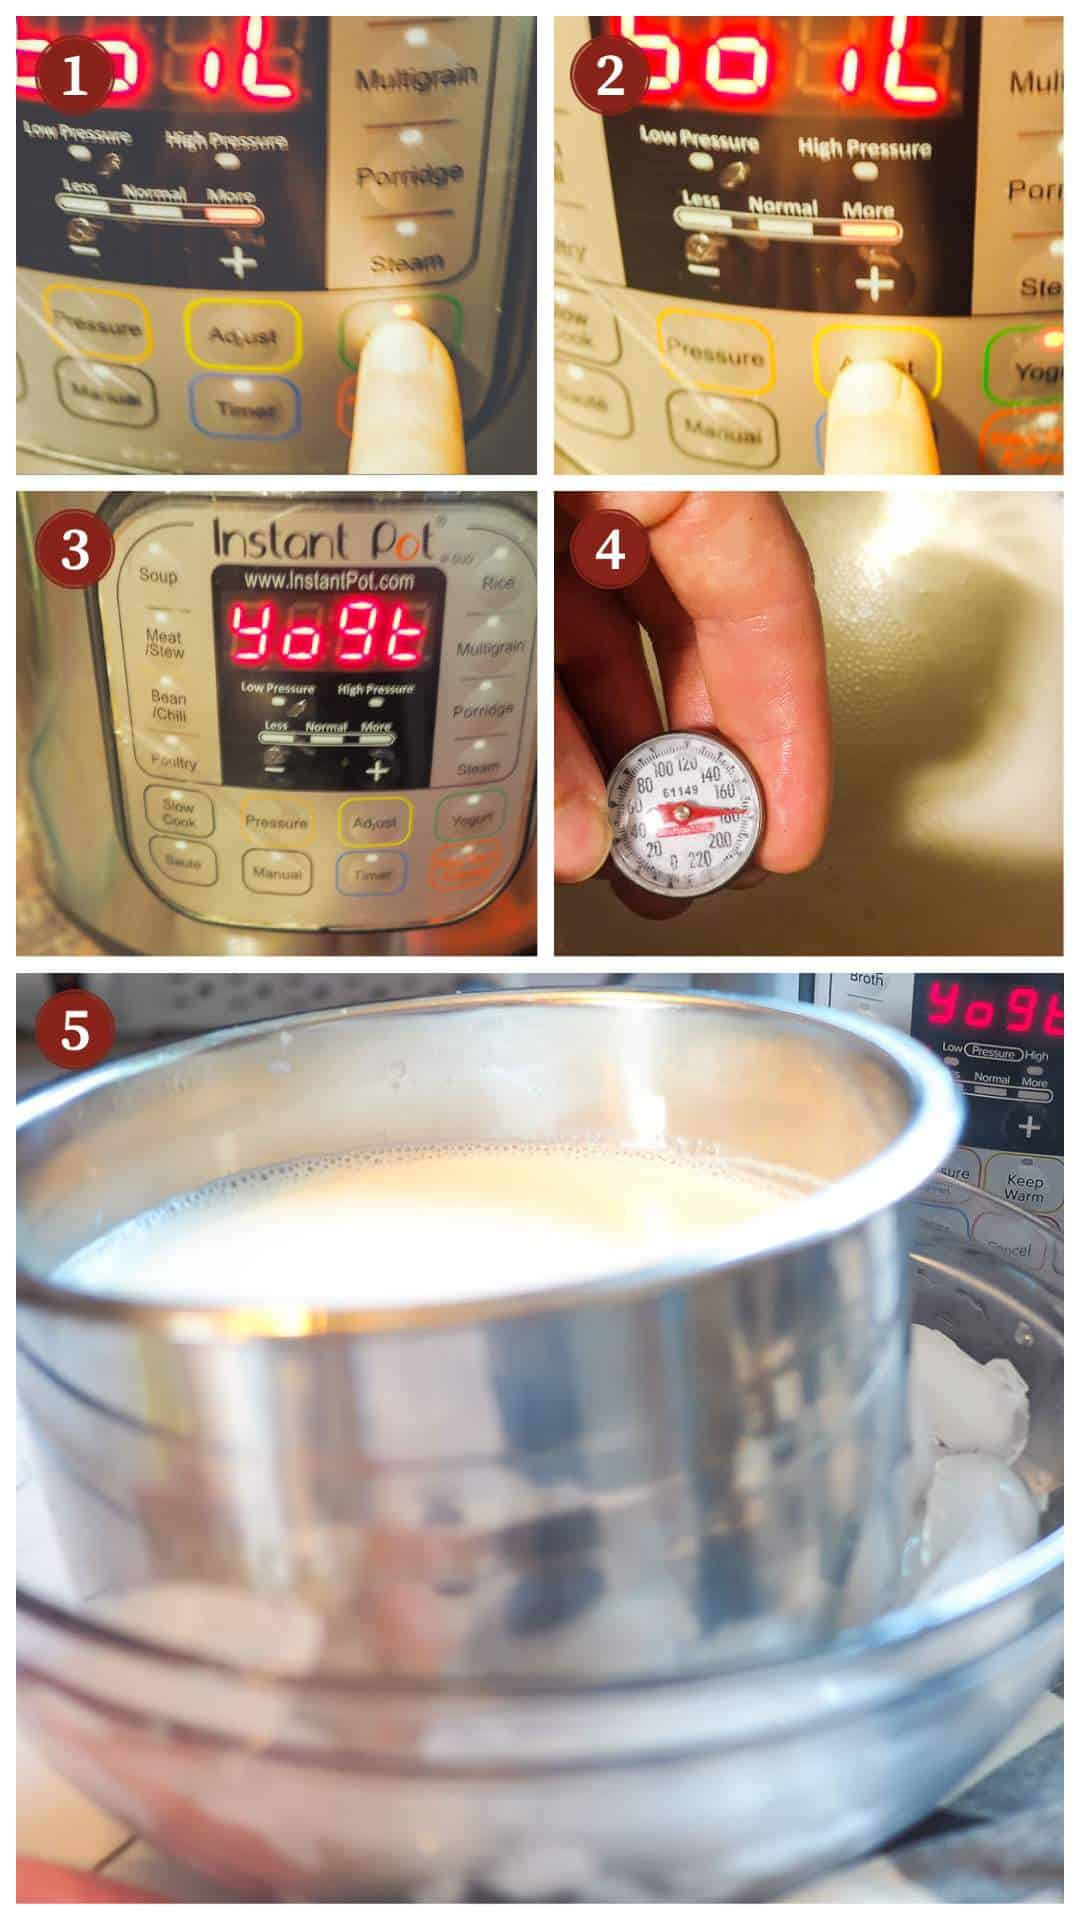 A collage of images showing the process of making yogurt in an Instant Pot, steps 1 - 5.